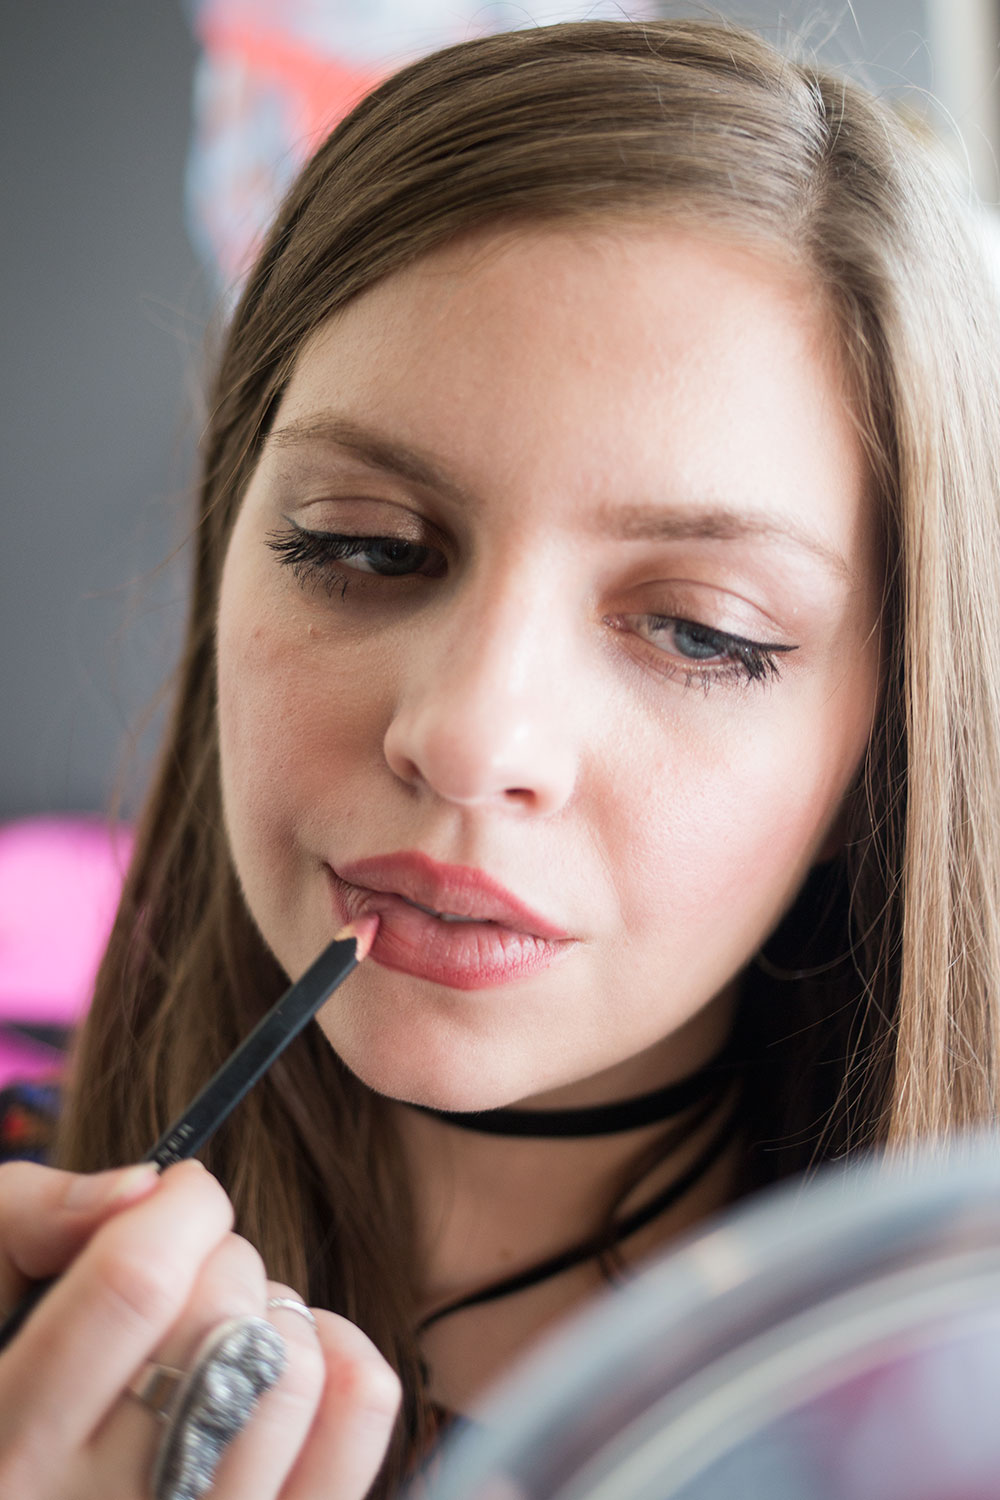 Make Lips Look Bigger by Overlining with Lip Pencil // Hello Rigby Seattle Beauty Blog